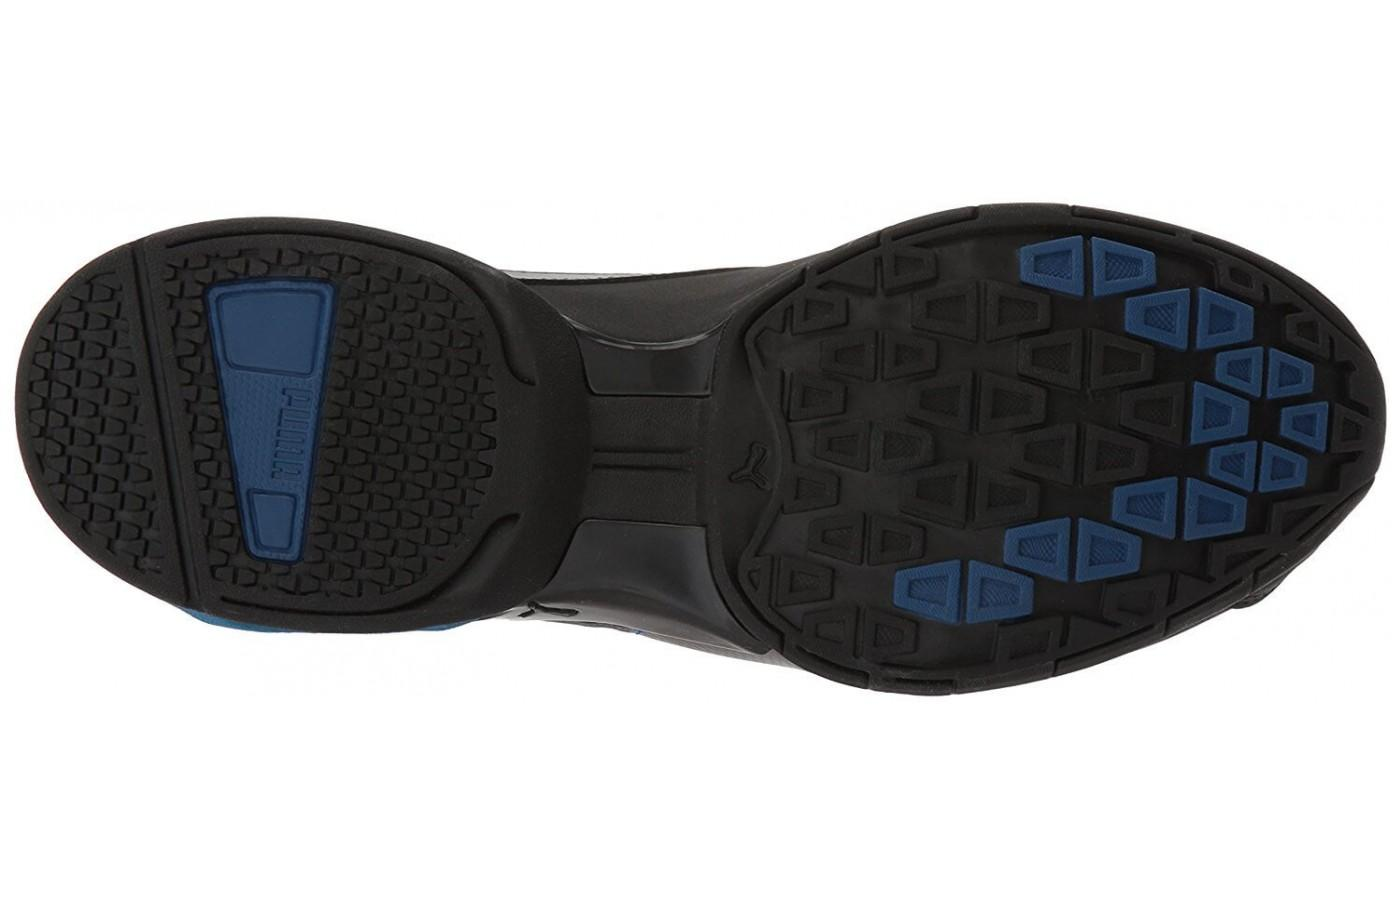 The special rubber outsole provides solid traction and durability